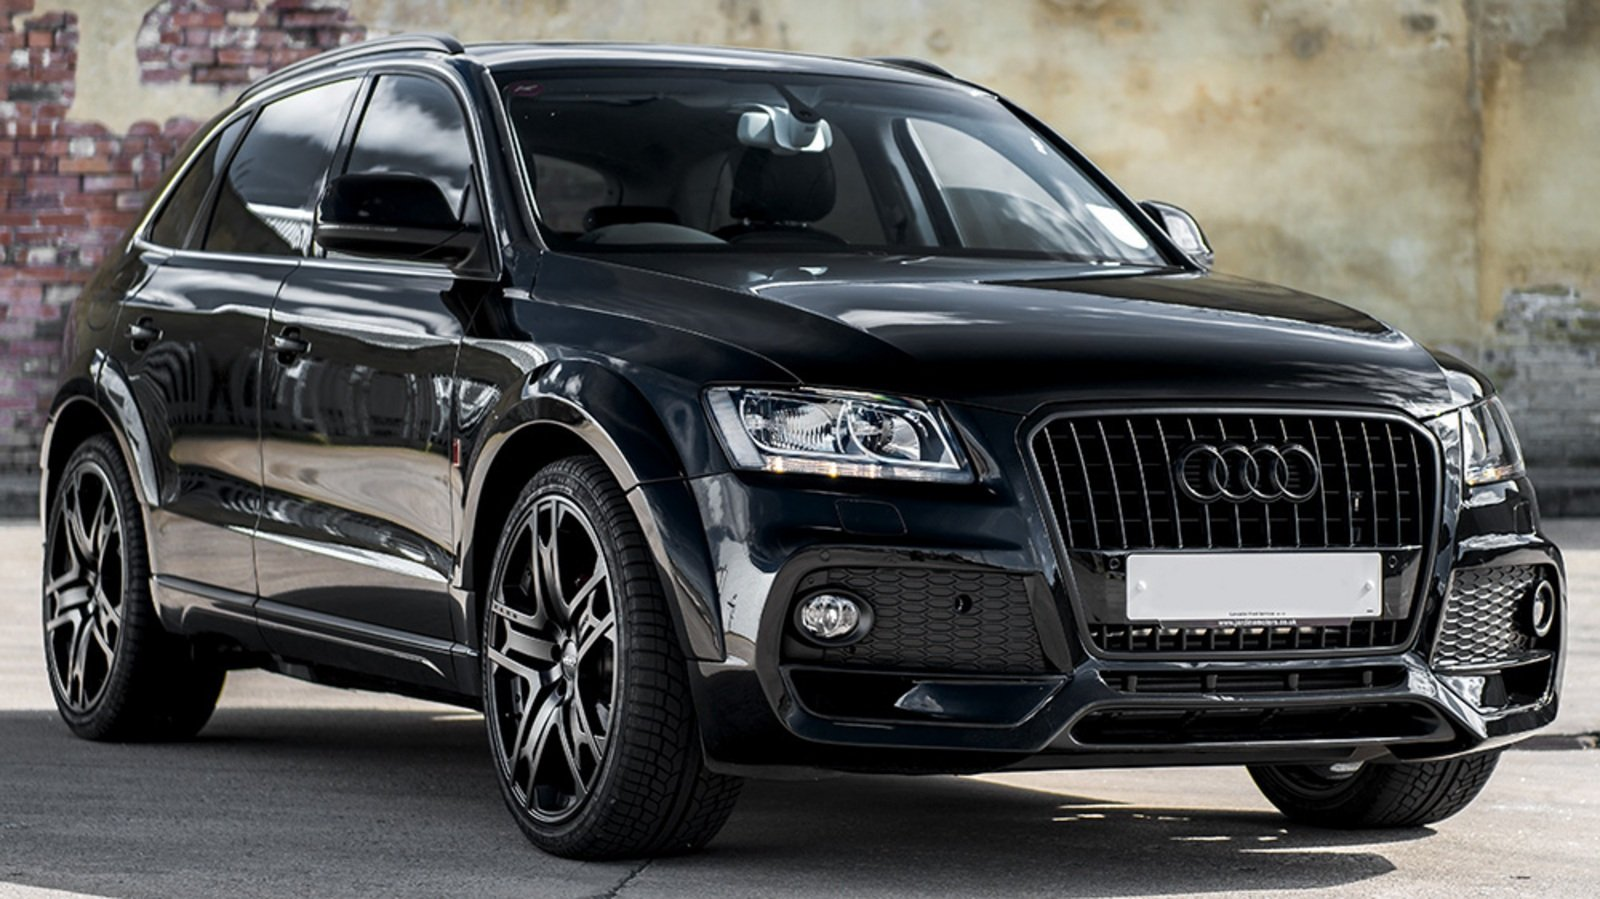 2014 audi q5 2 0 tdi quattro s tronic wide track by kahn. Black Bedroom Furniture Sets. Home Design Ideas